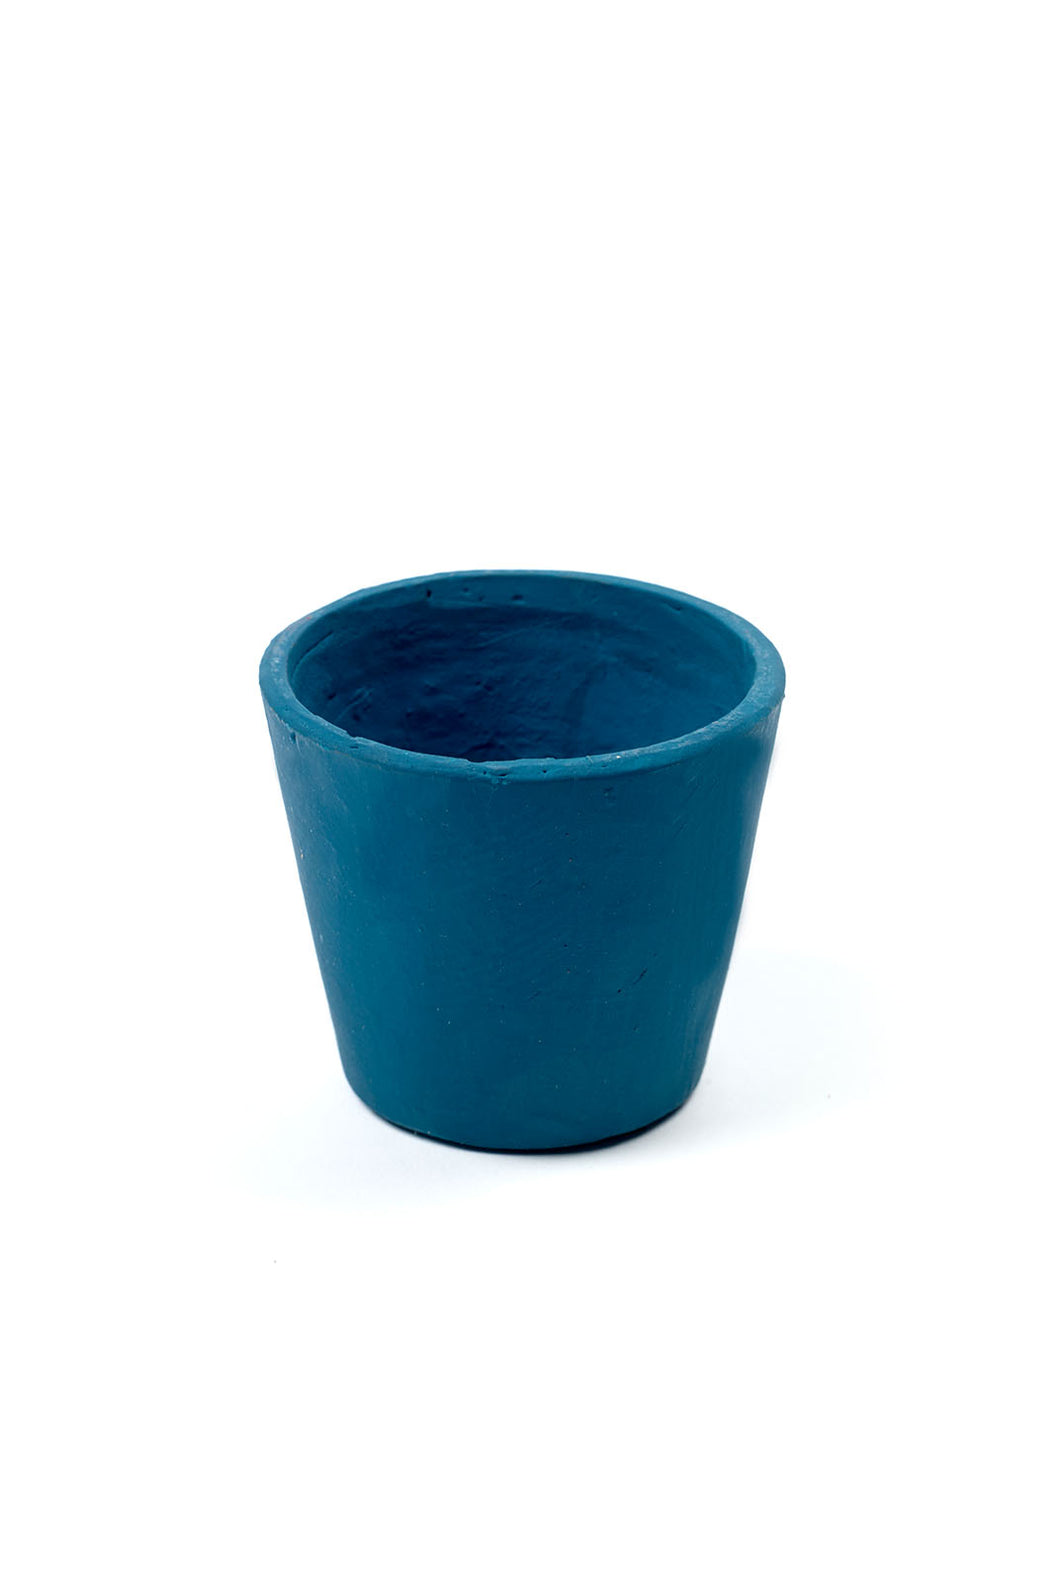 Serax - Pottery Collection - Stoneware Flower Pot - Extra Small - Teal Blue